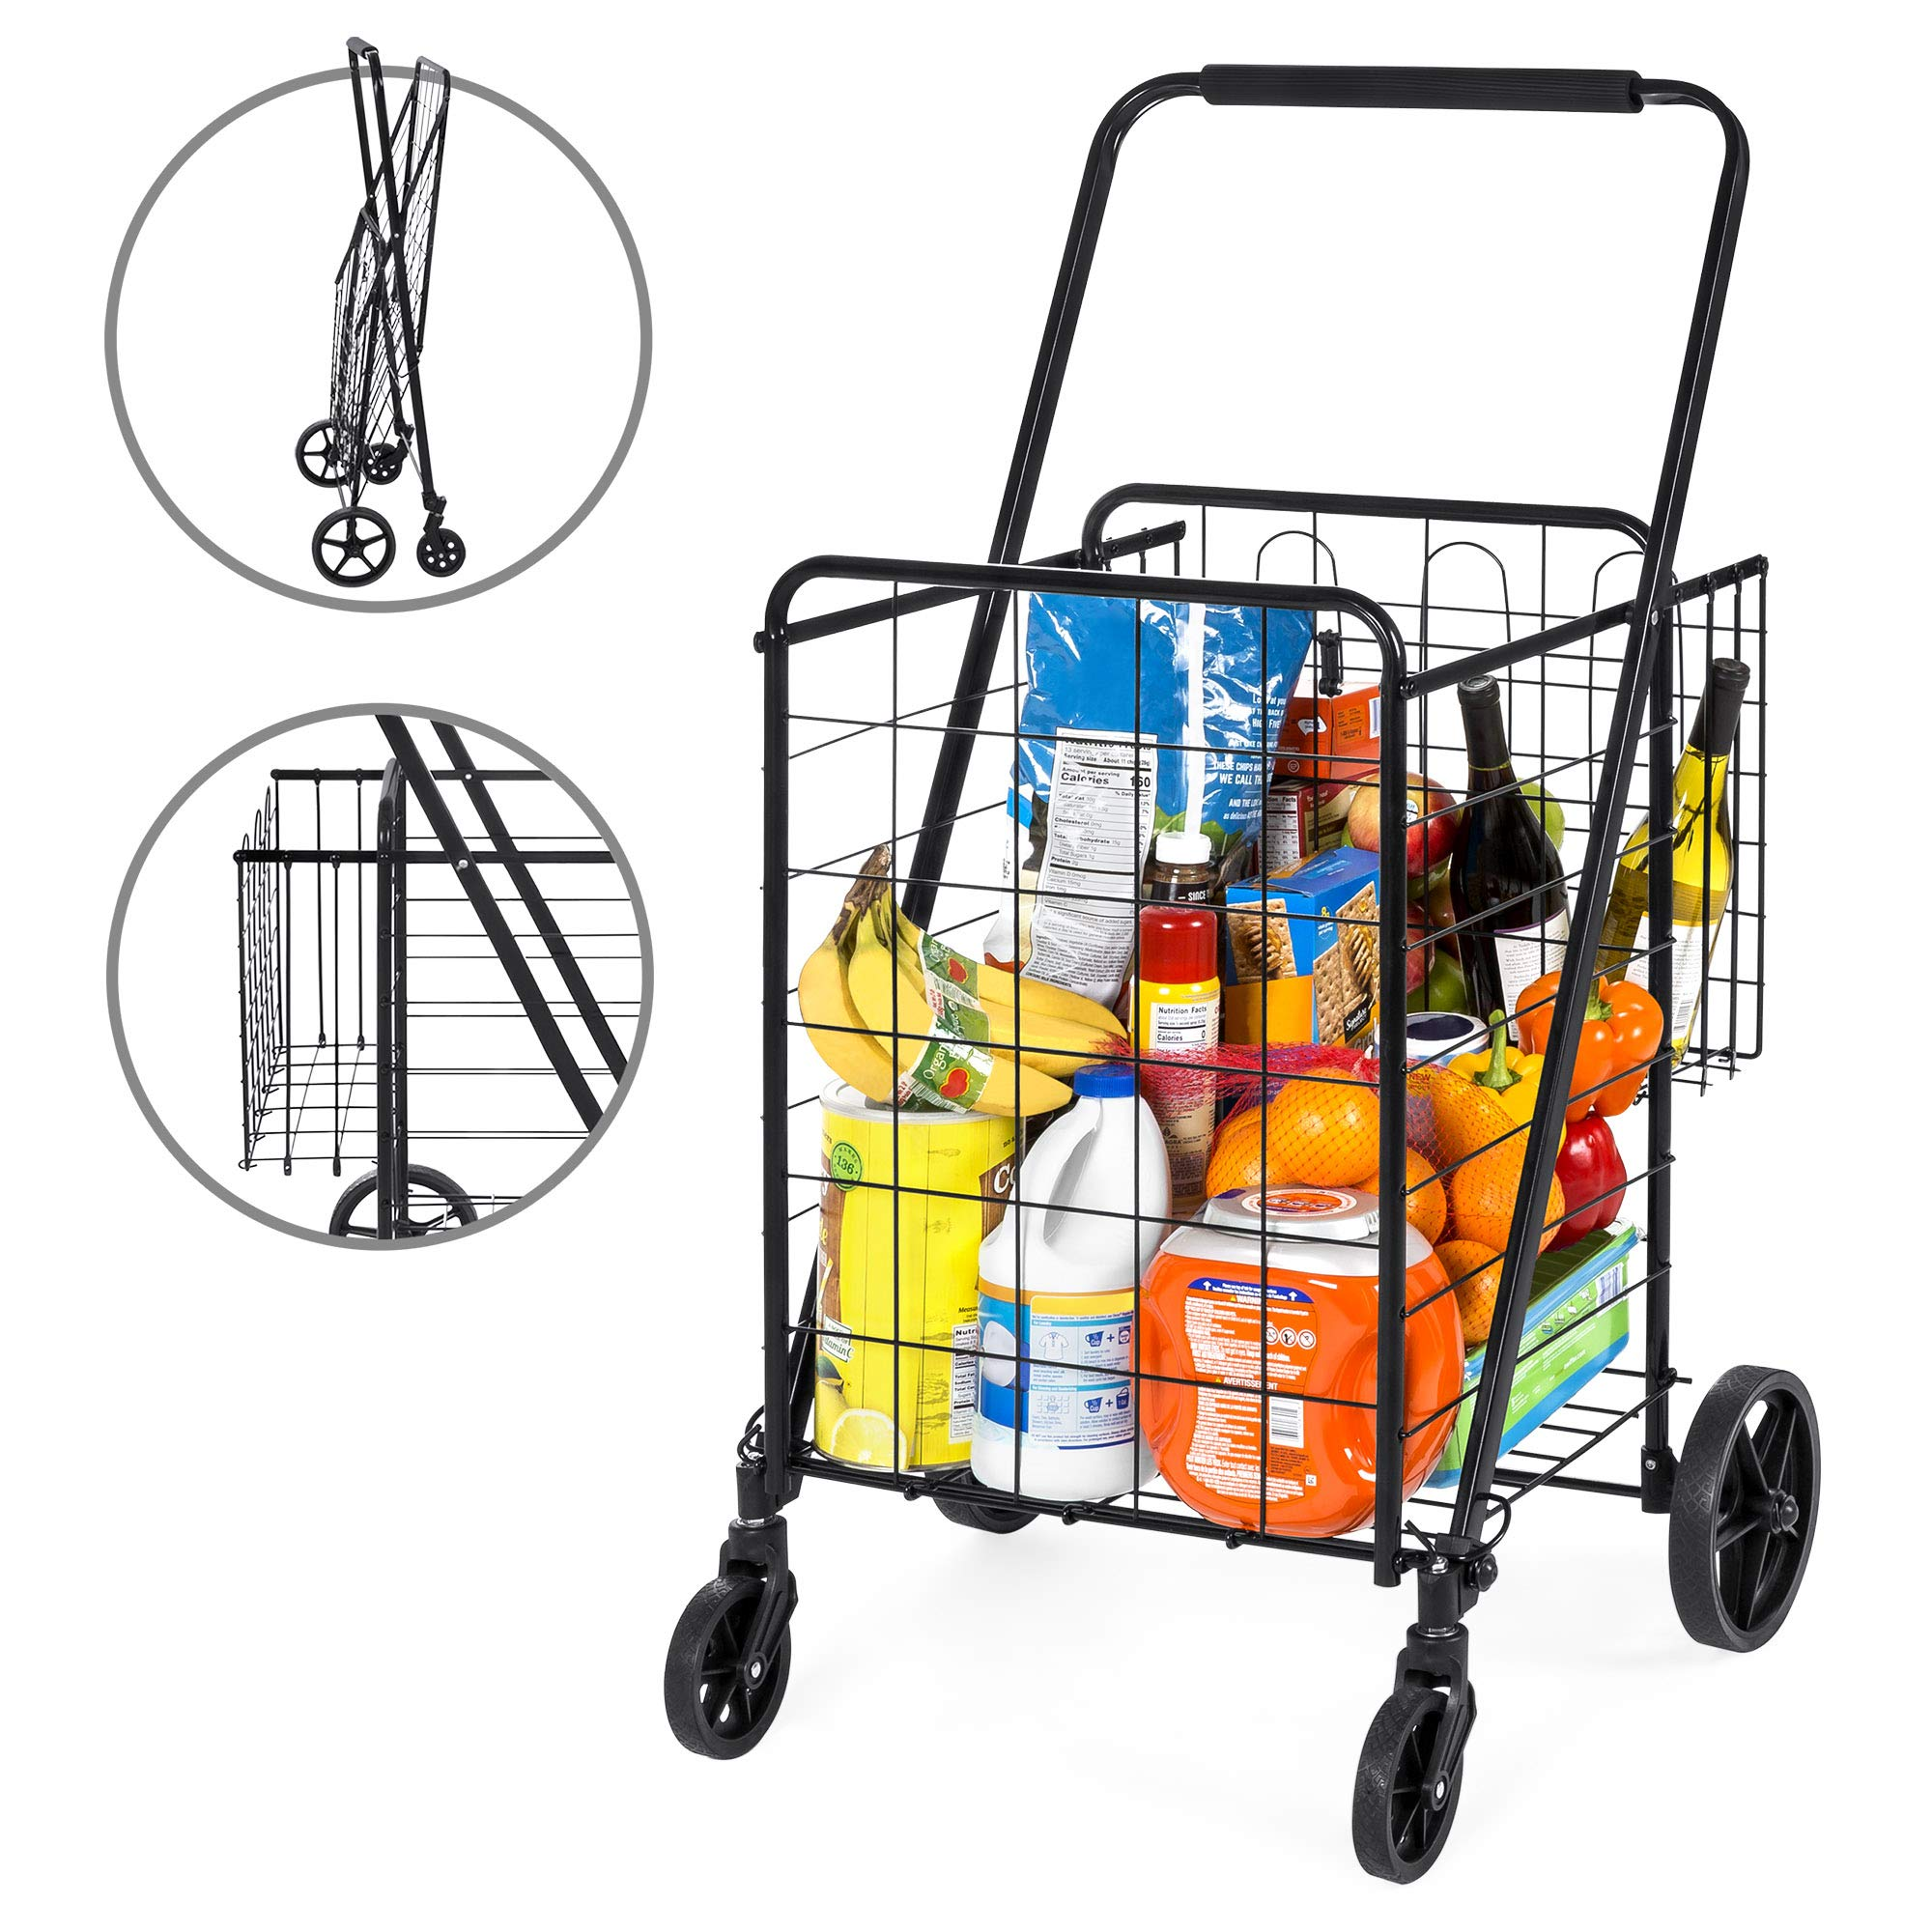 Best Choice Products 24.5x21.5in Folding Steel Storage Utility Cart for Shopping, Groceries w/ 2 Baskets, Swivel Wheels